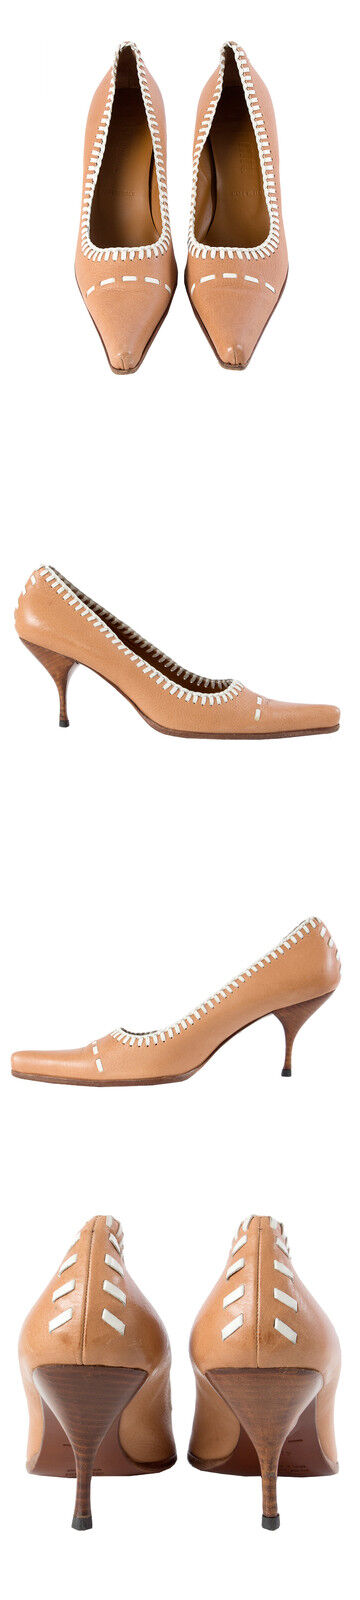 40243 auth MIU MIU fallow marron & blanc blanc blanc leather Pumps chaussures 41 927e5a